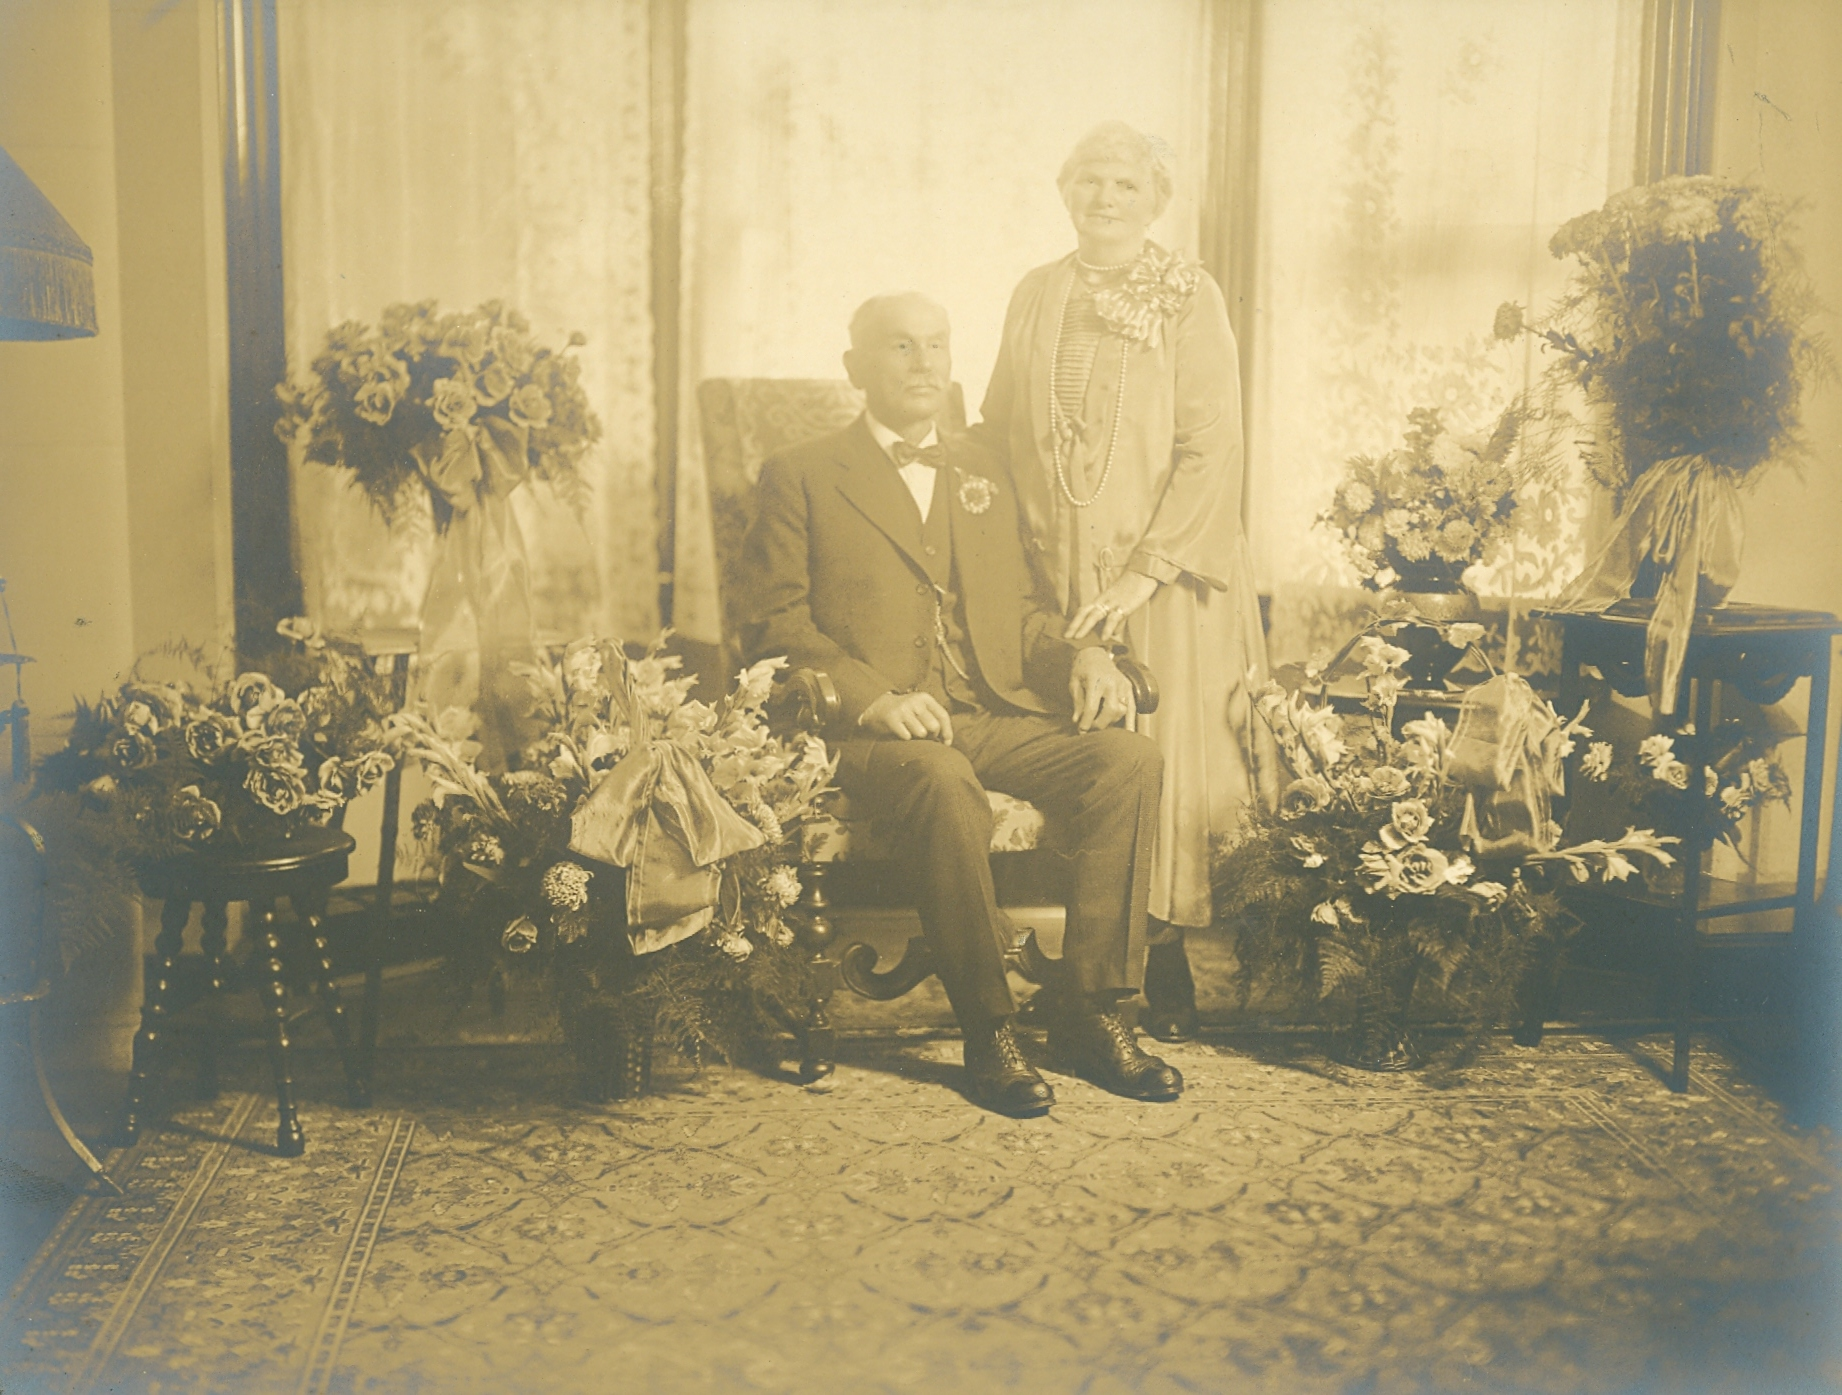 Philip Beckerle (b.1854-1939) with his spouse   Pauline Miller Beckerle (b.18??-1933)  Pearl River New York 1927